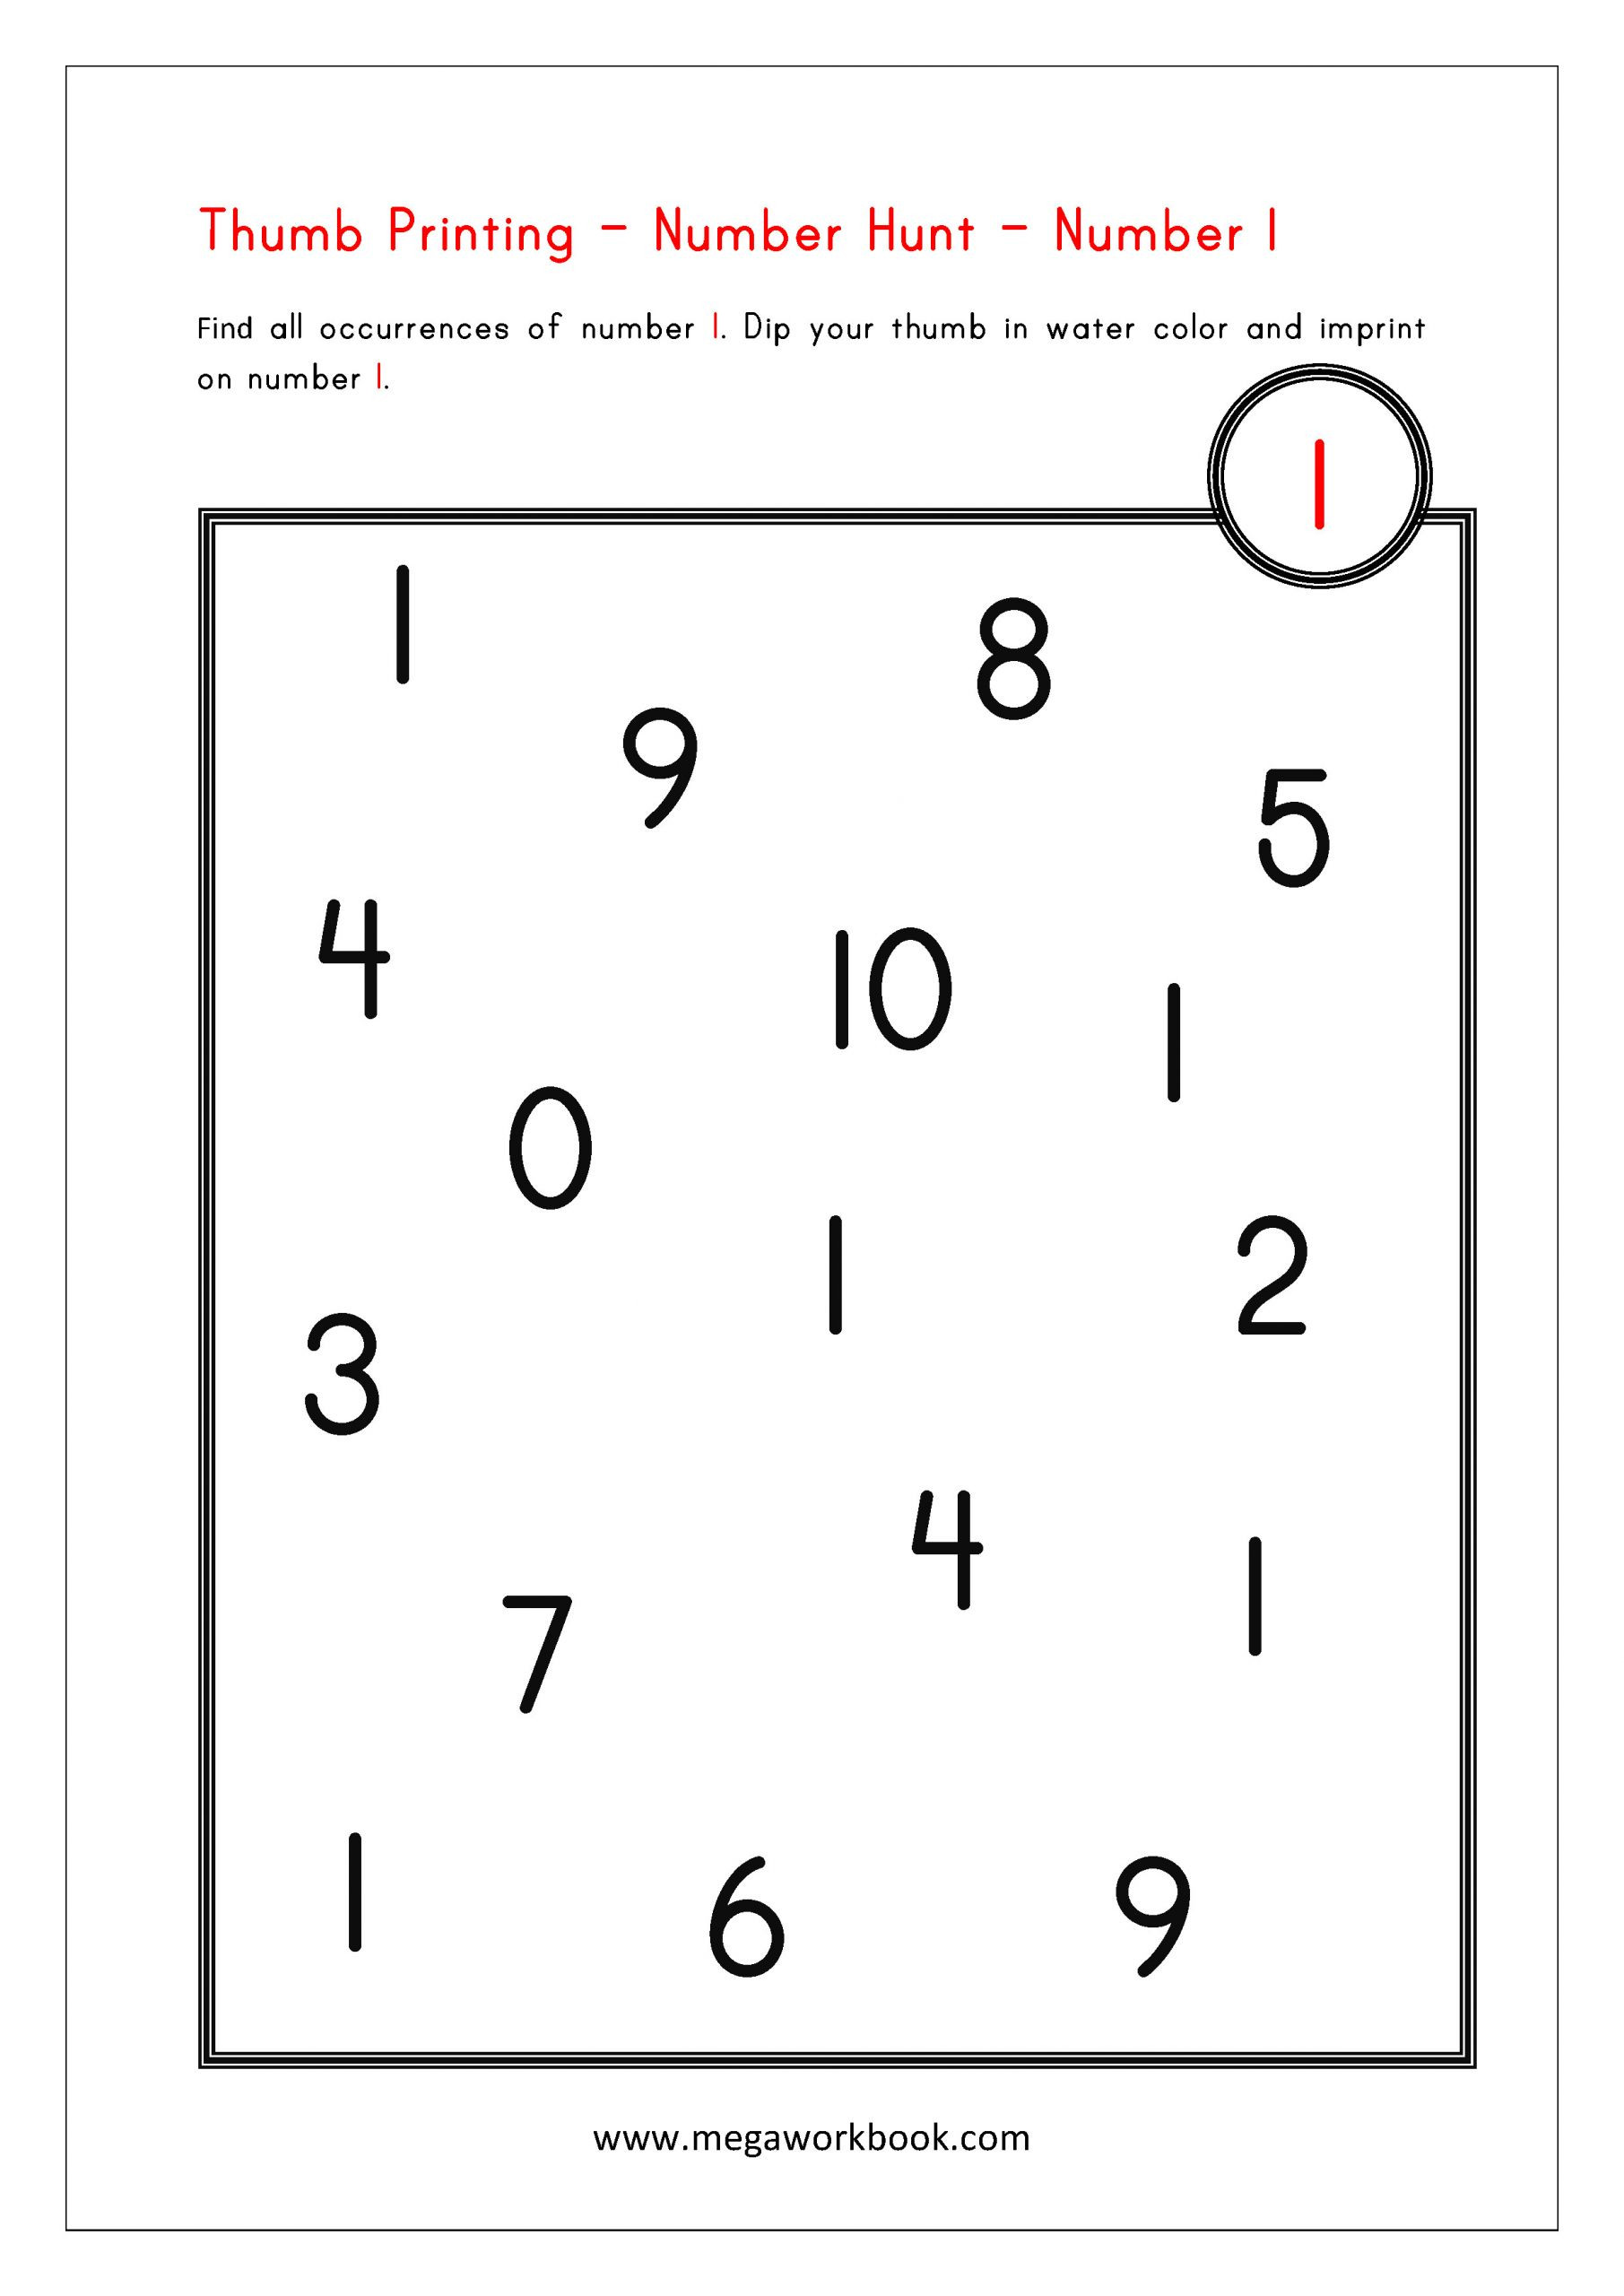 Skip Counting Worksheets 2nd Grade 5 Free Math Worksheets Second Grade 2 Skip Counting Skip